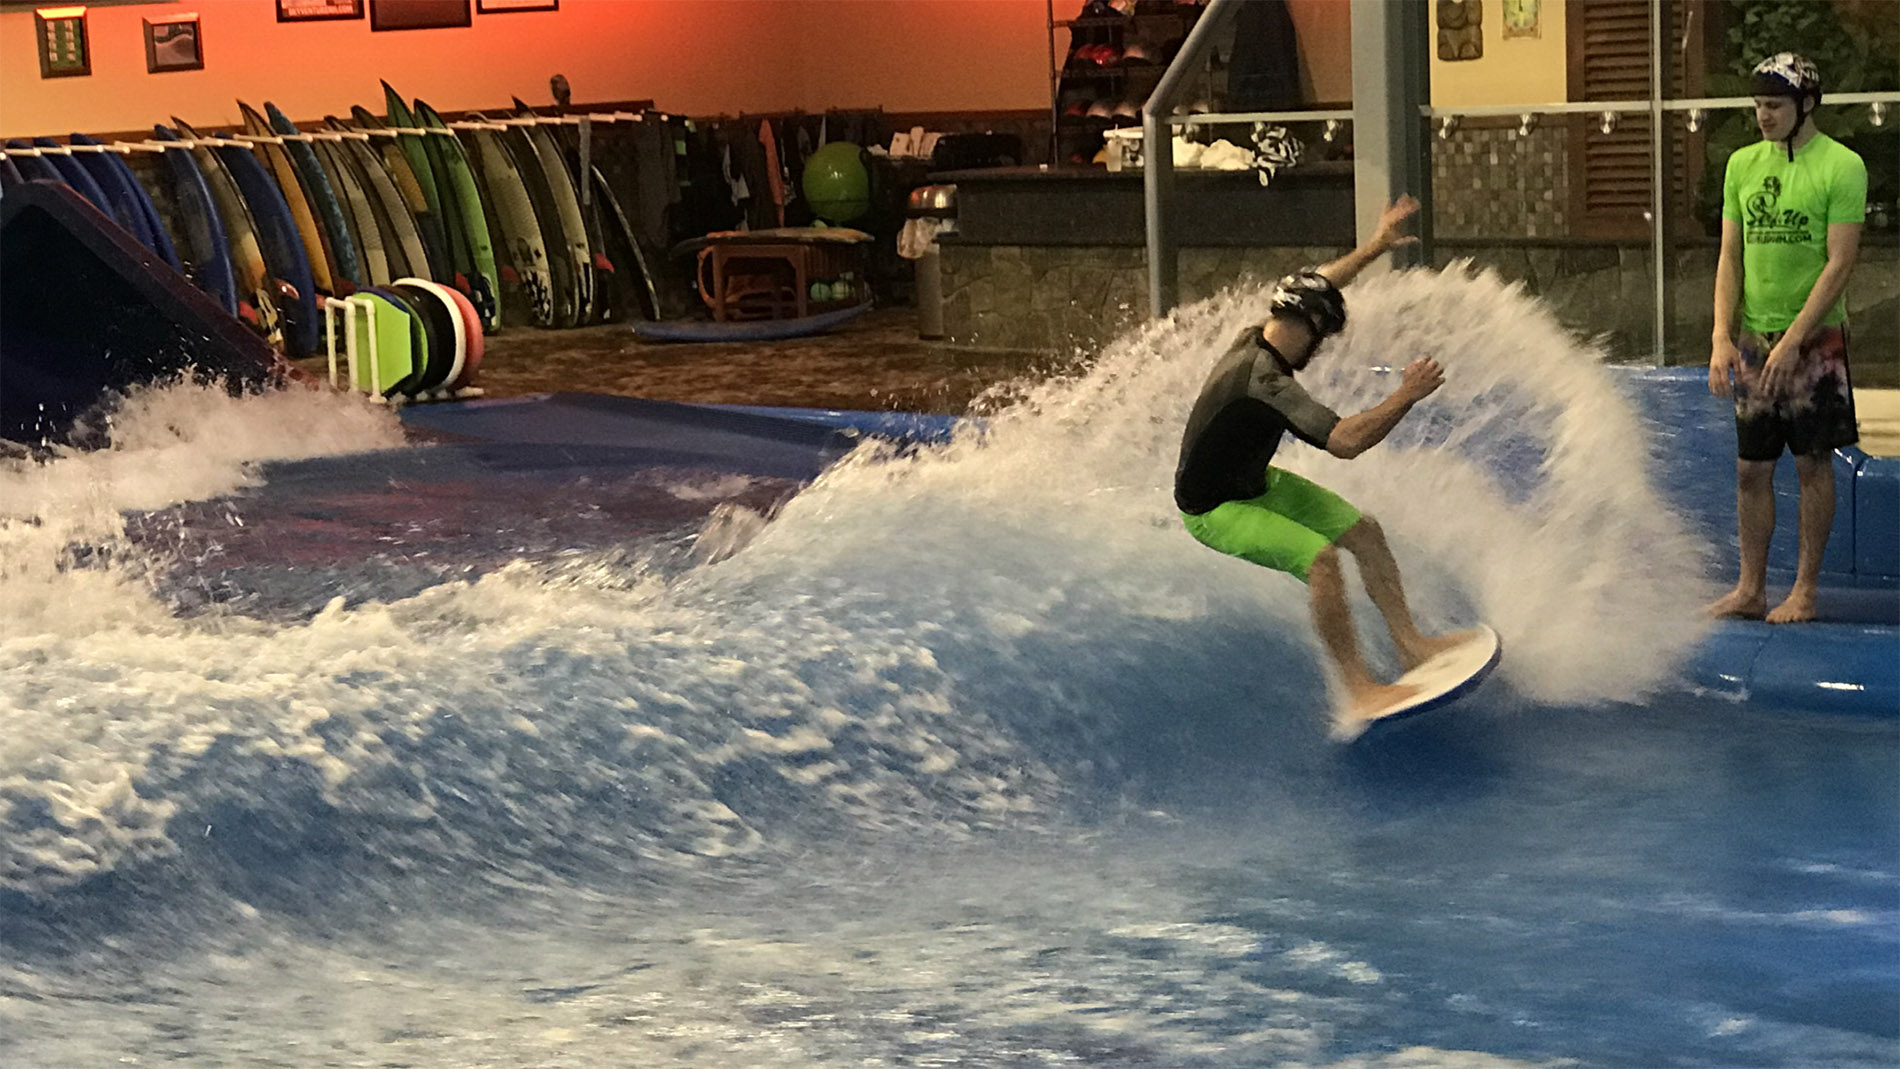 surfboard for wave pool